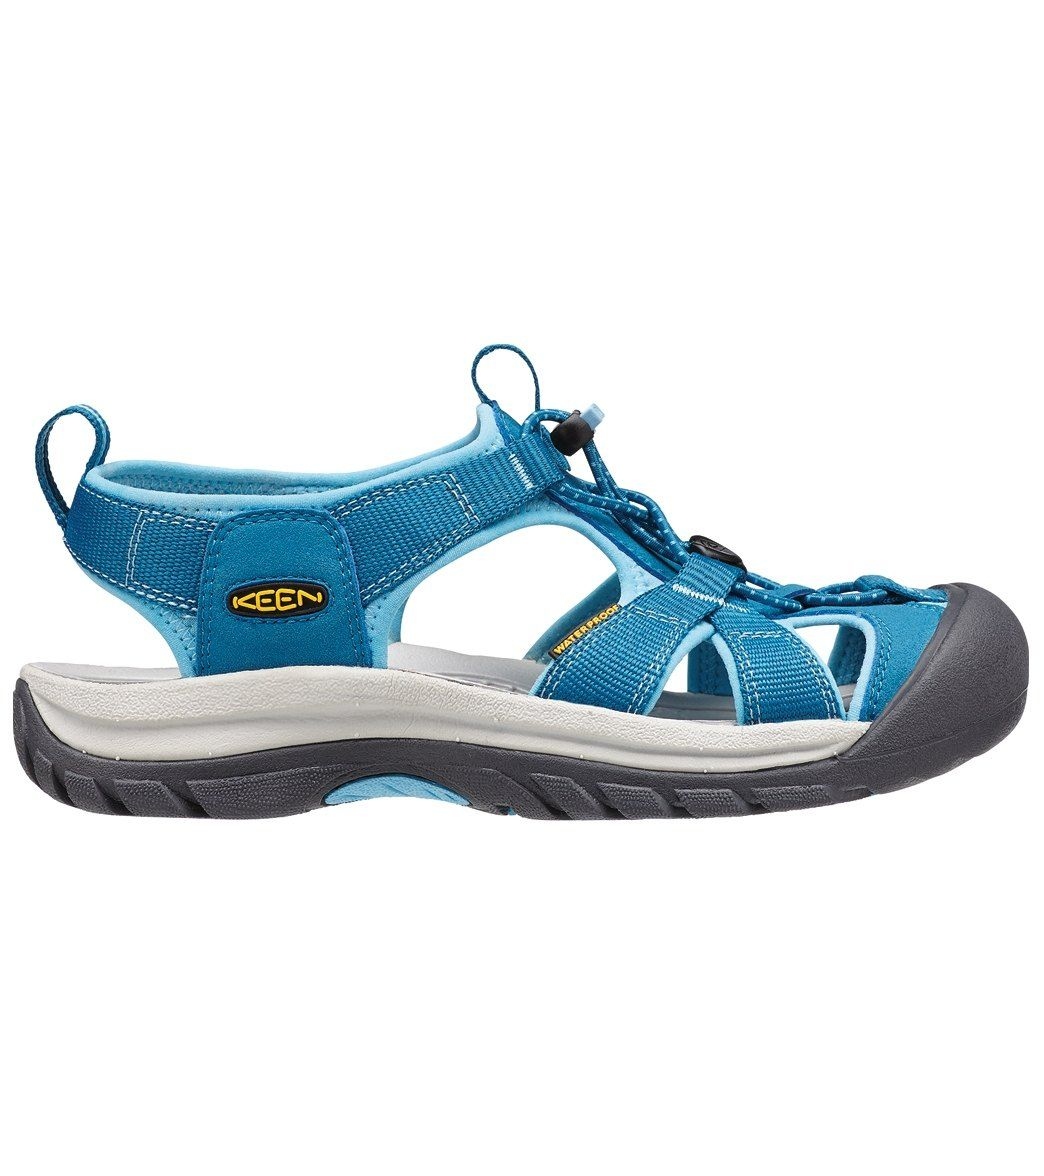 5f5b473a8410 Keen Women s Venice H2 Water Shoes at SwimOutlet.com - The Web s most  popular…